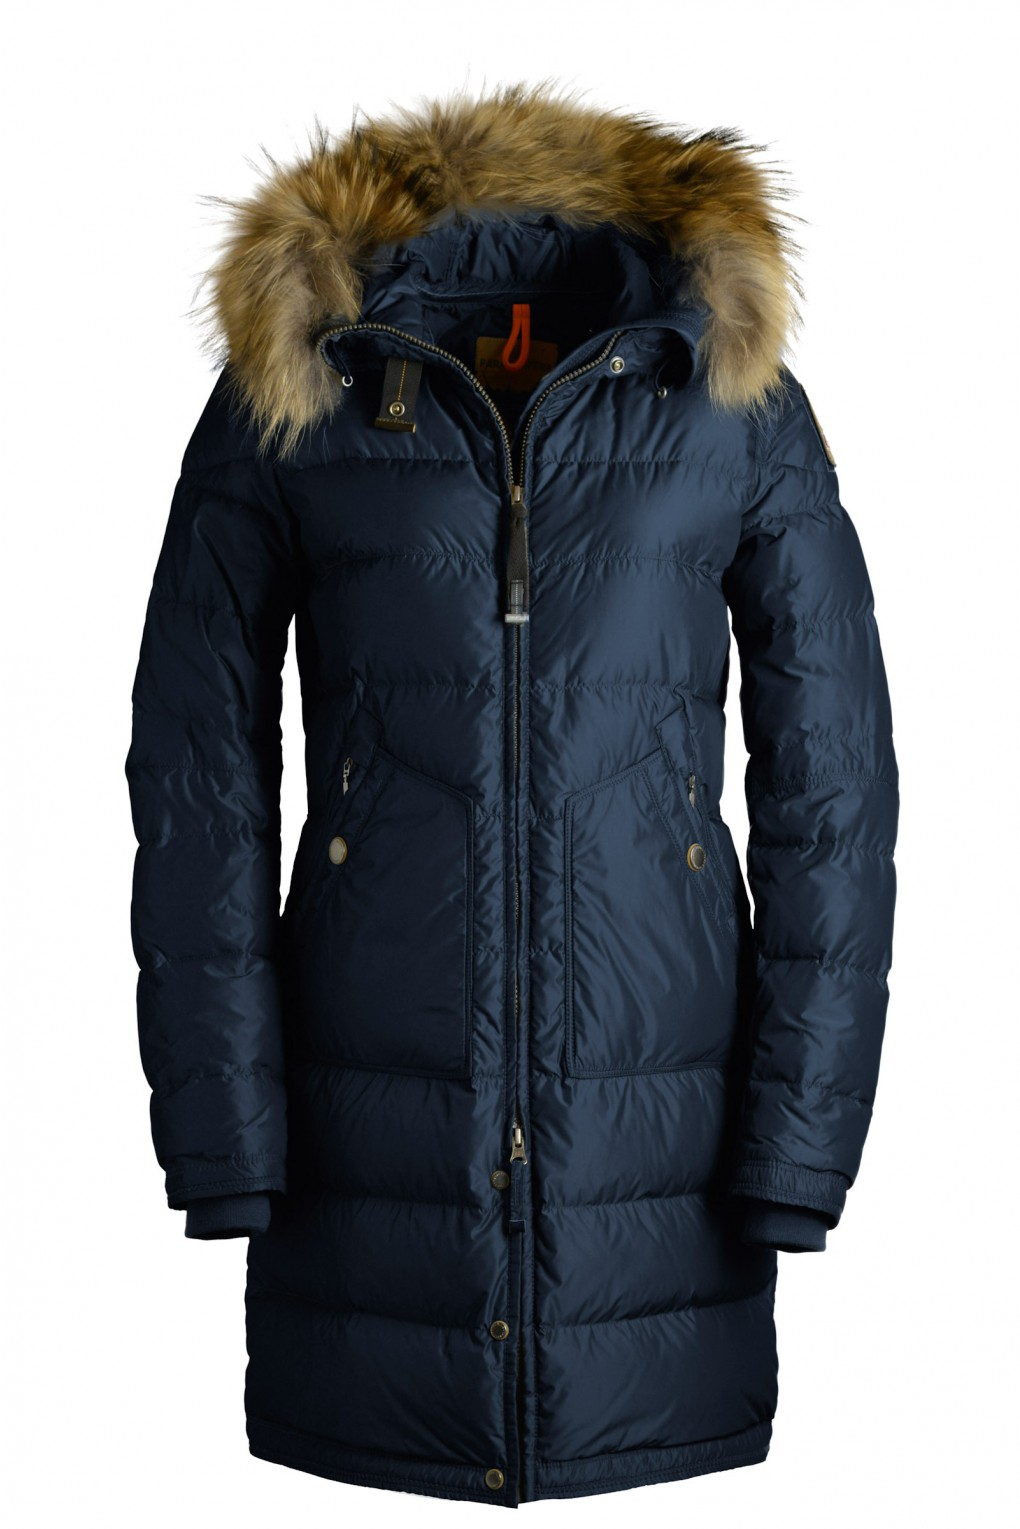 parajumpers LIGHT LONG BEAR woman outerwear Marine